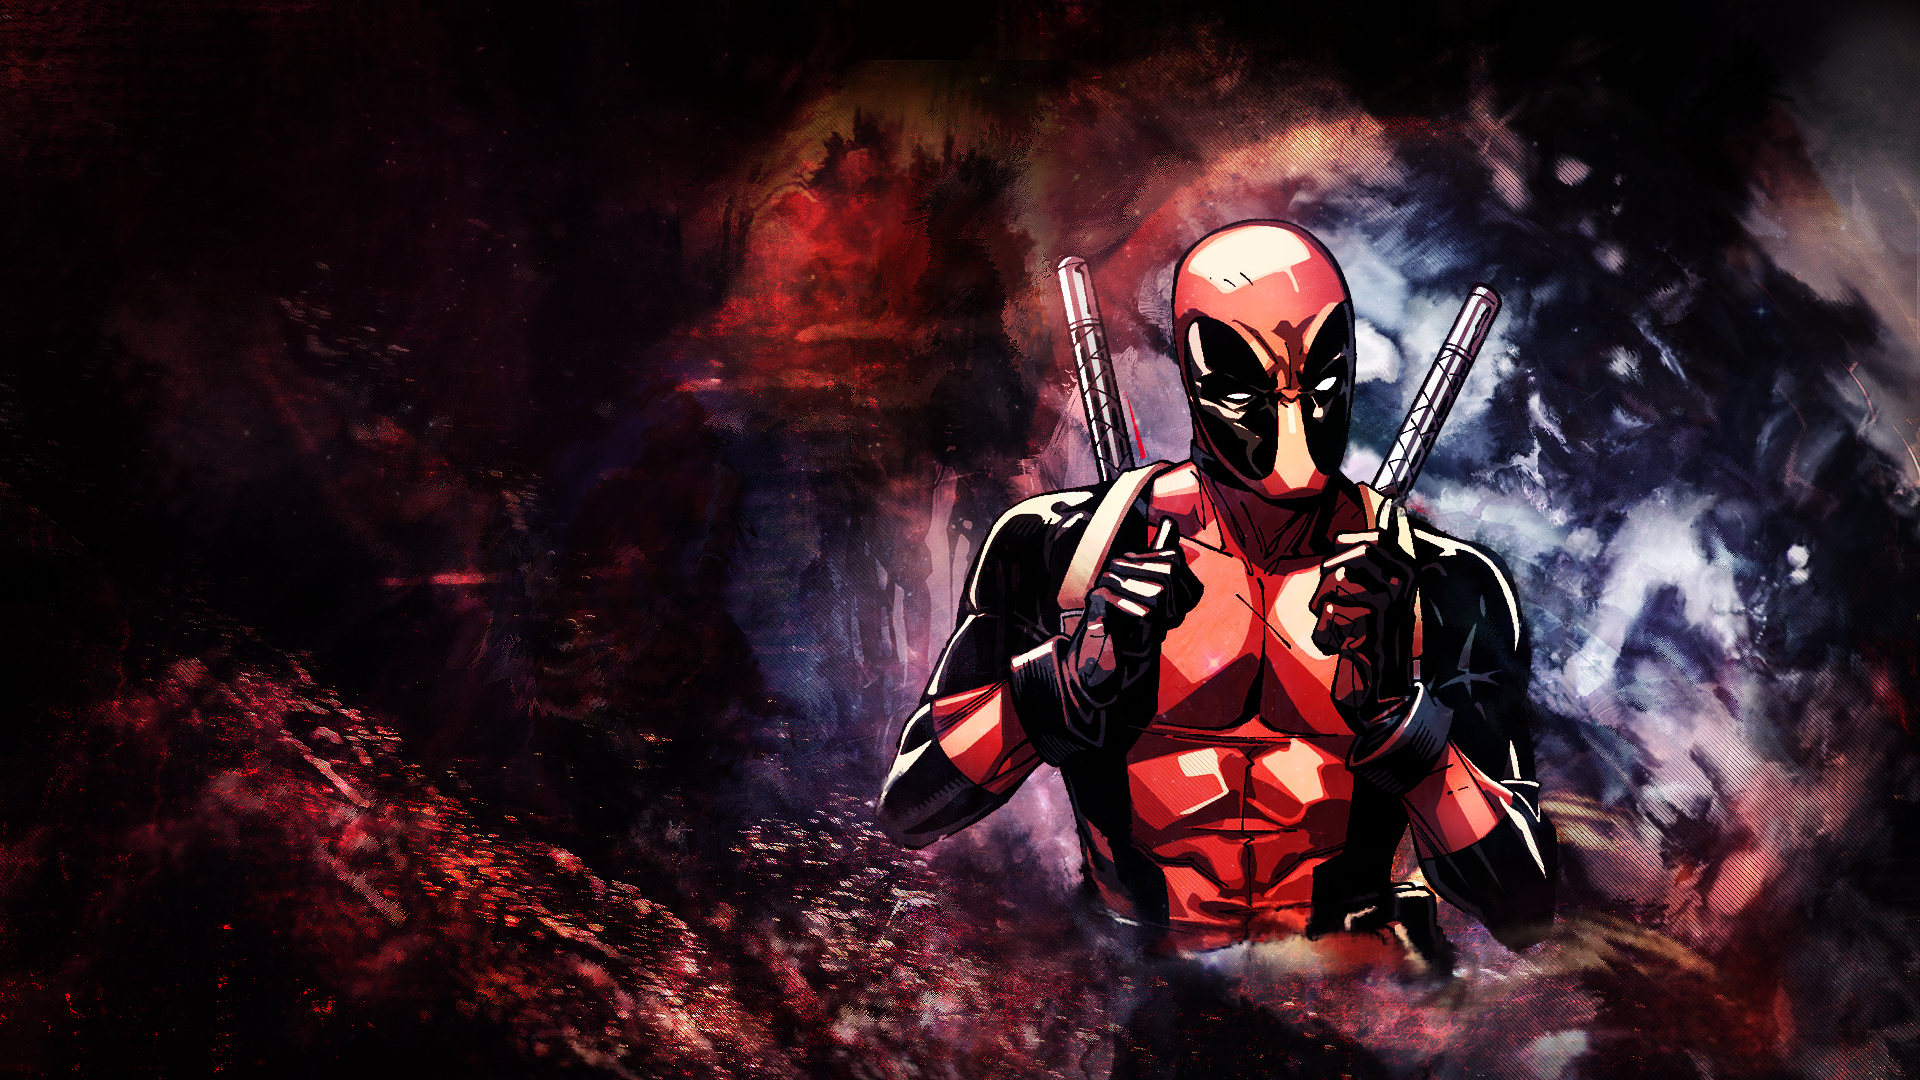 Deadpool wallpaper 1920x1080 by pandaseno on deviantart for Deadpool wallpaper 1920x1080